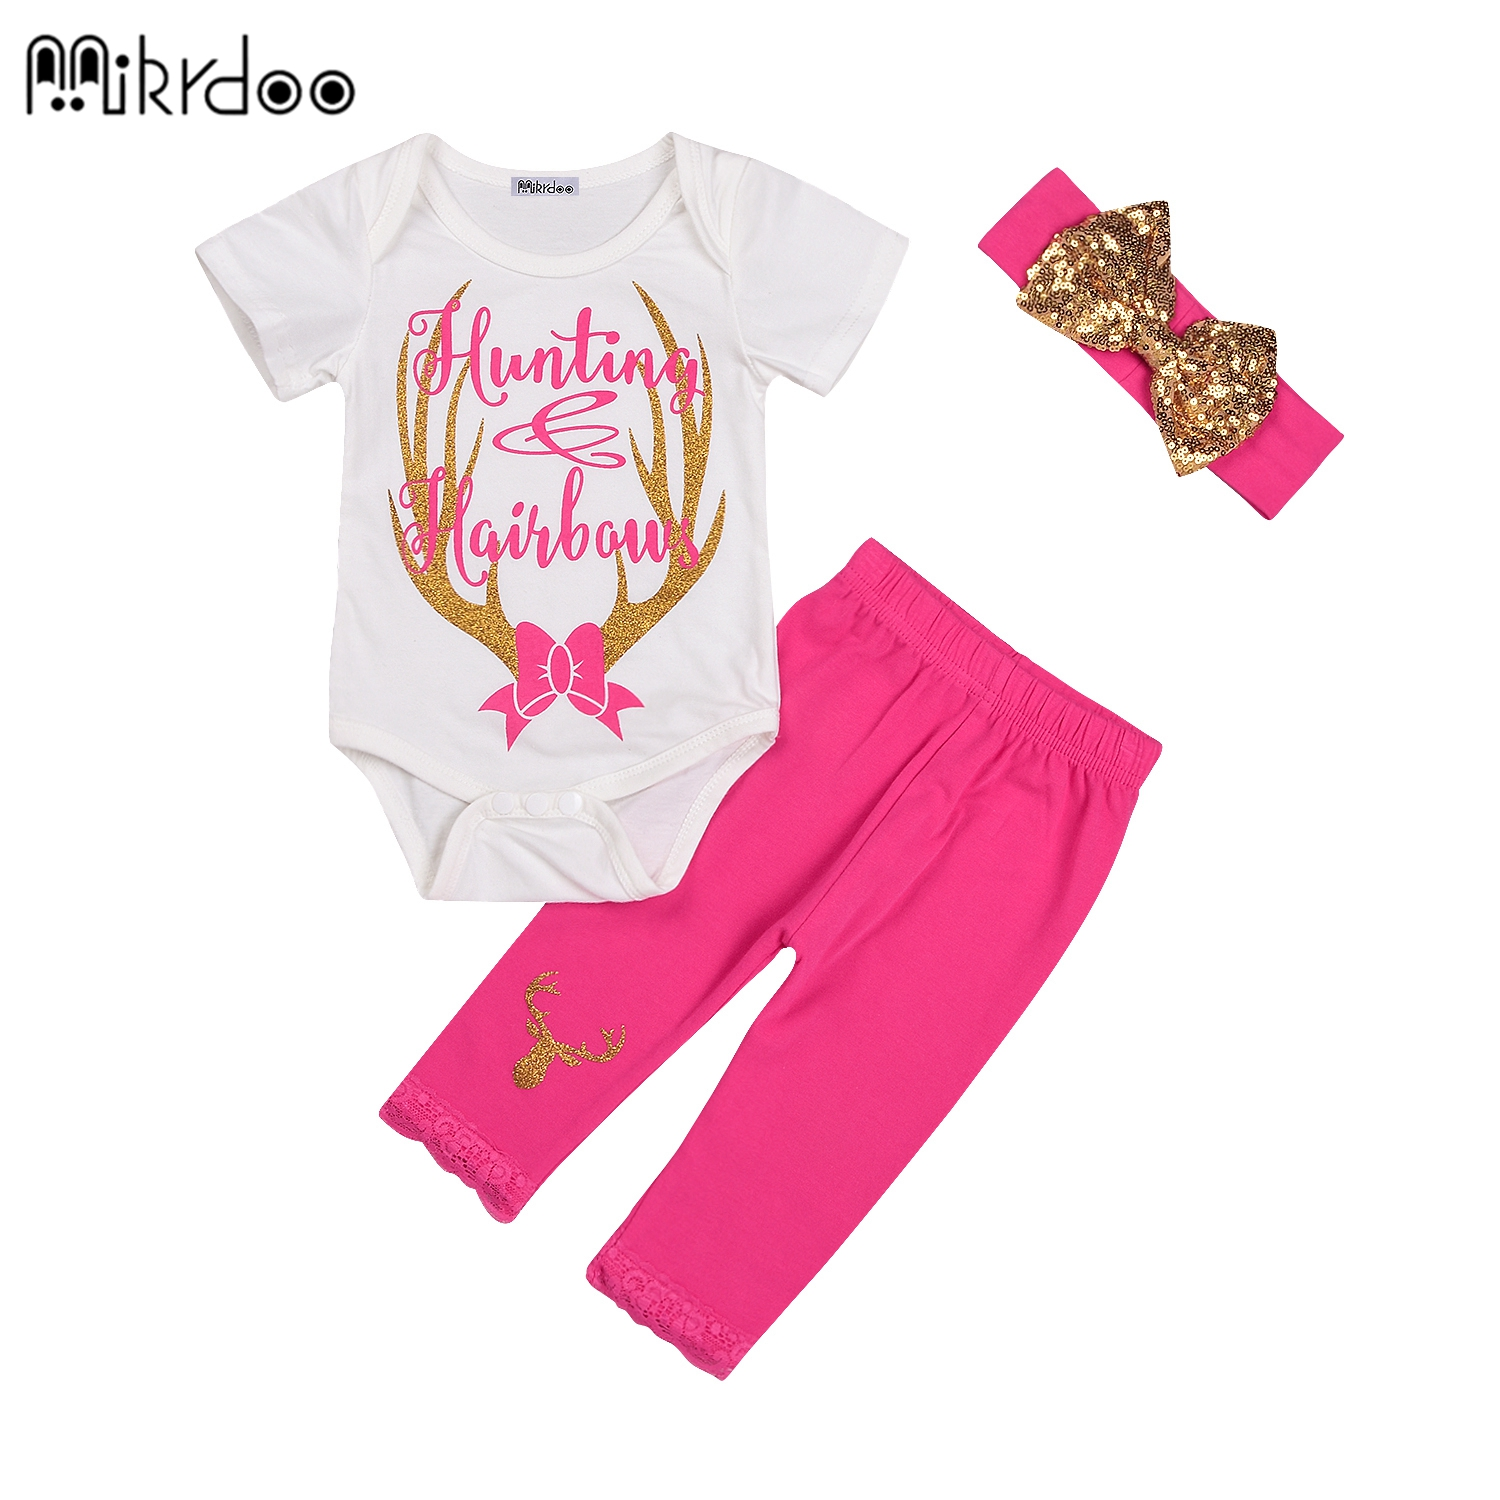 HOT SALE 3pcs/set baby girl clothes Cartoon antler pink casual pants +romper+gloden bow headband spring summer baby infant clo